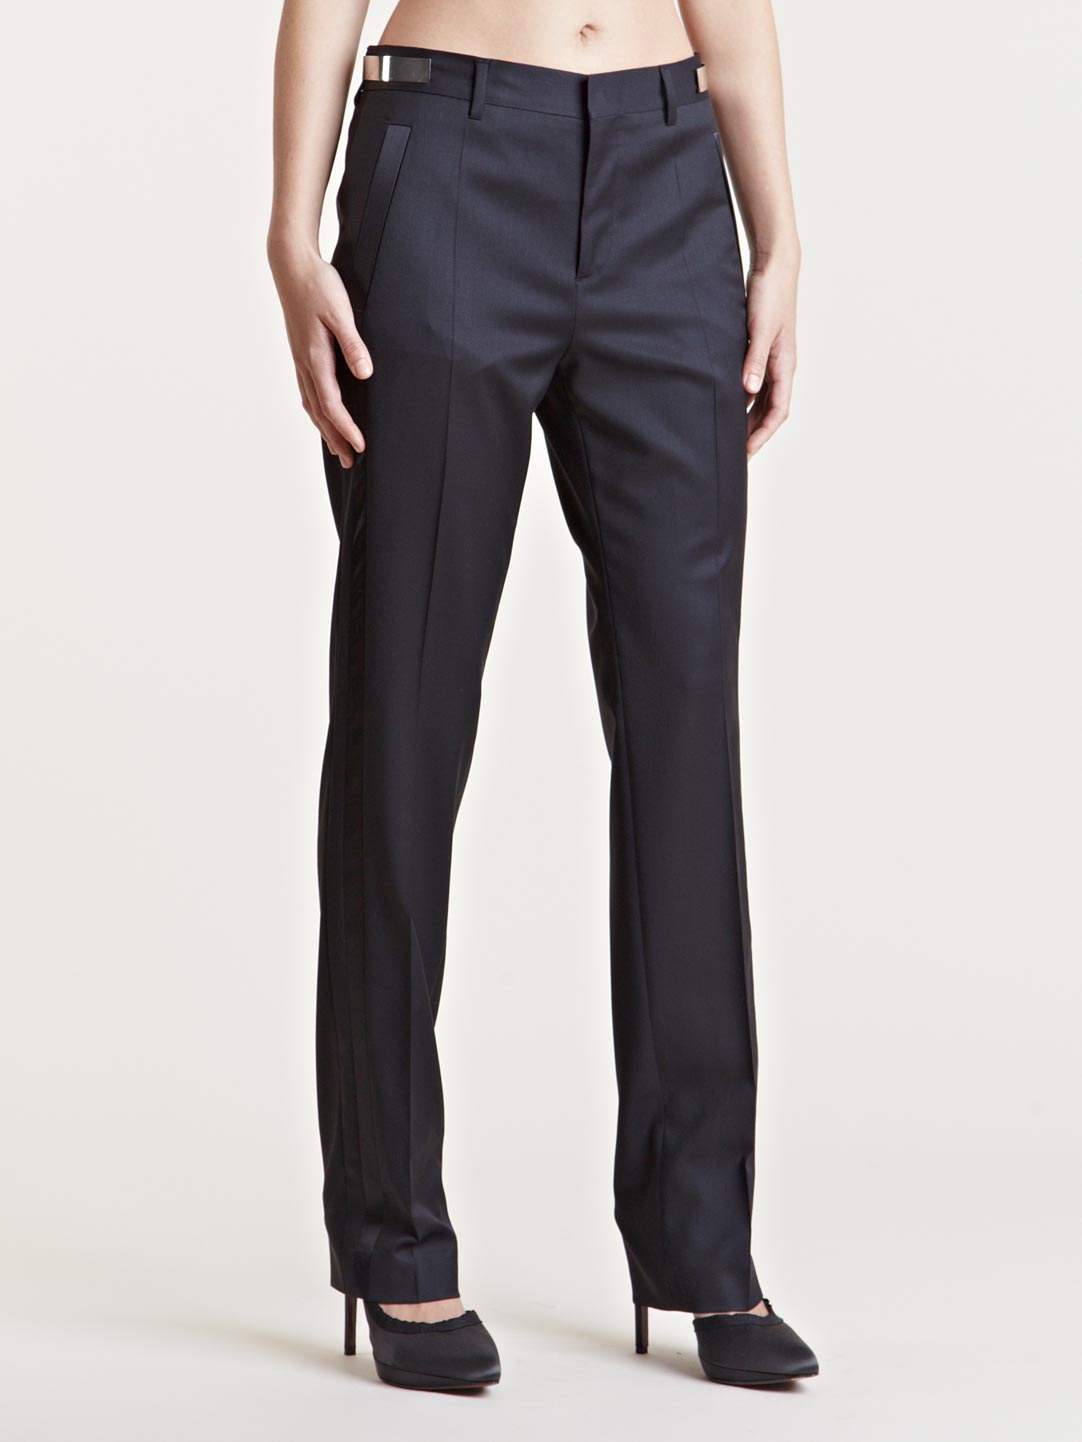 Find women tailored trousers at ShopStyle. Shop the latest collection of women tailored trousers from the most popular stores - all in one place.